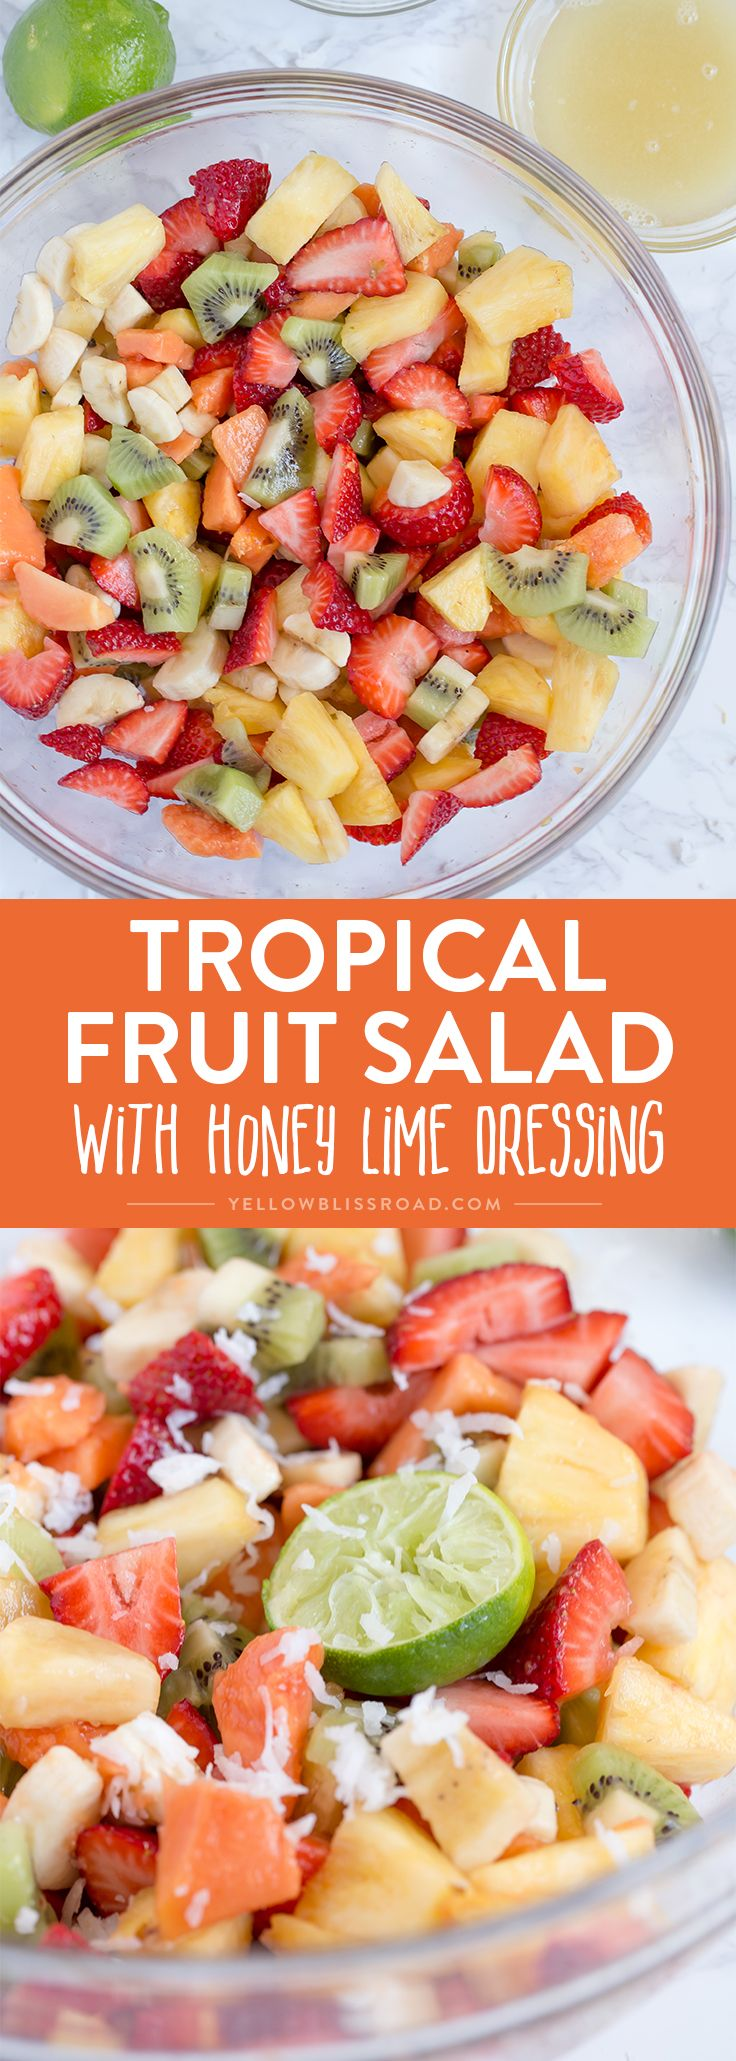 This Tropical Fruit Salad with Honey Lime Dressing is the light and refreshing and the perfect snack or side dish to any spring or summer meal